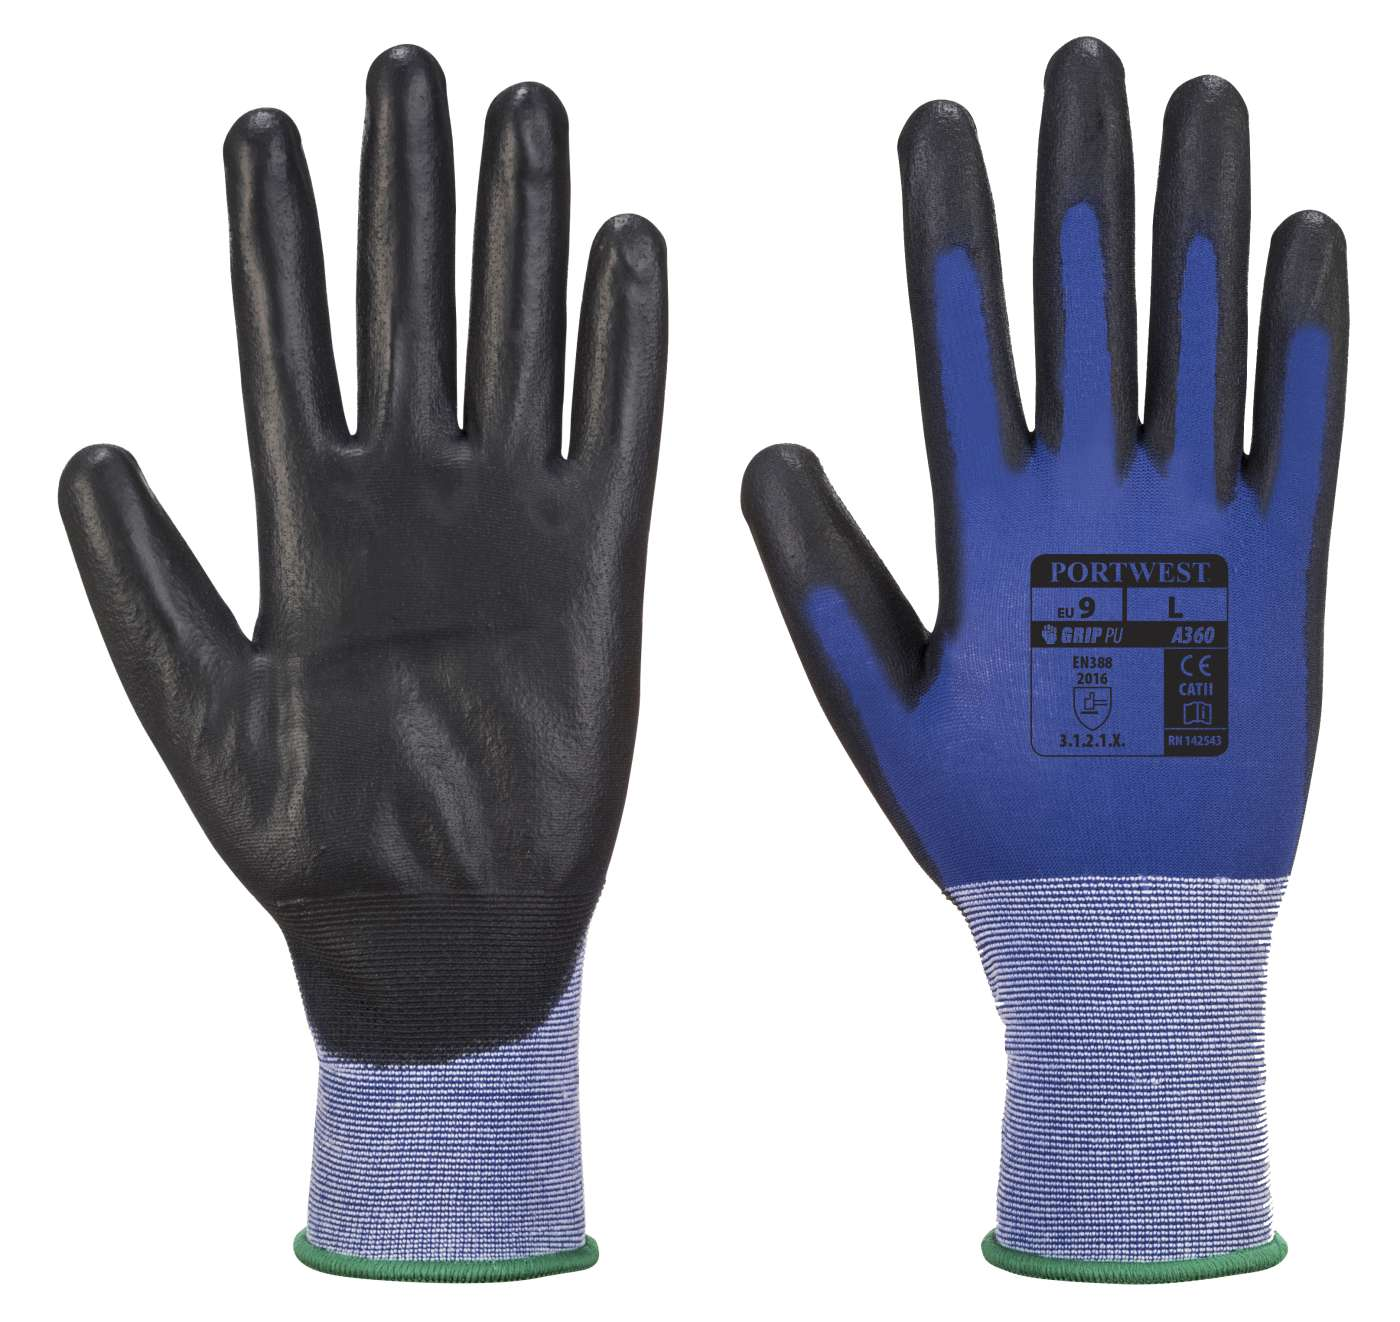 Portwest Grip Ultra Thin PU Senti  Flex Glove A360